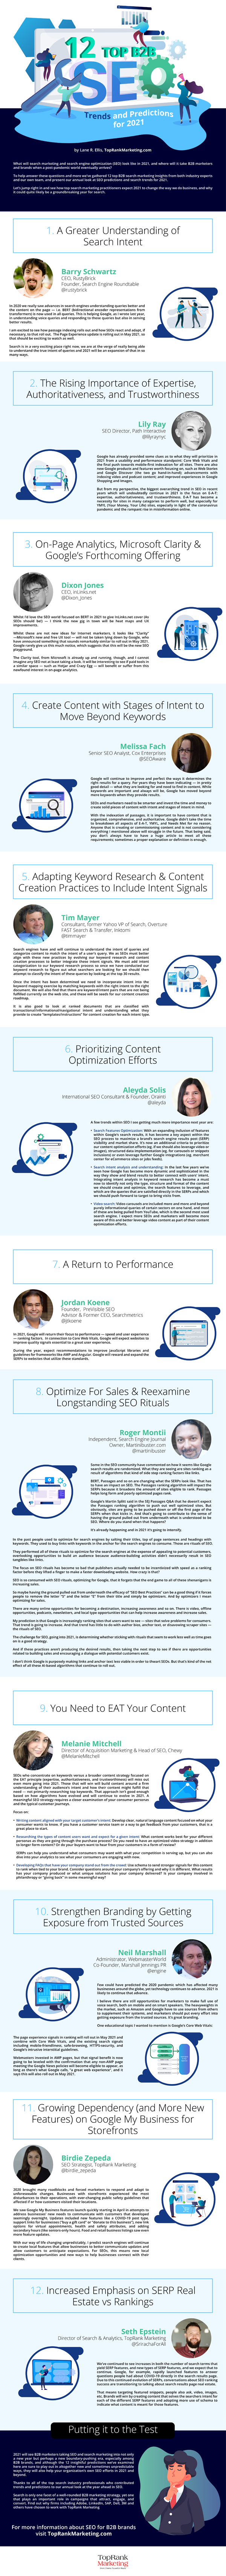 opRank Marketing12 SEO Trends For 2021 Infographic